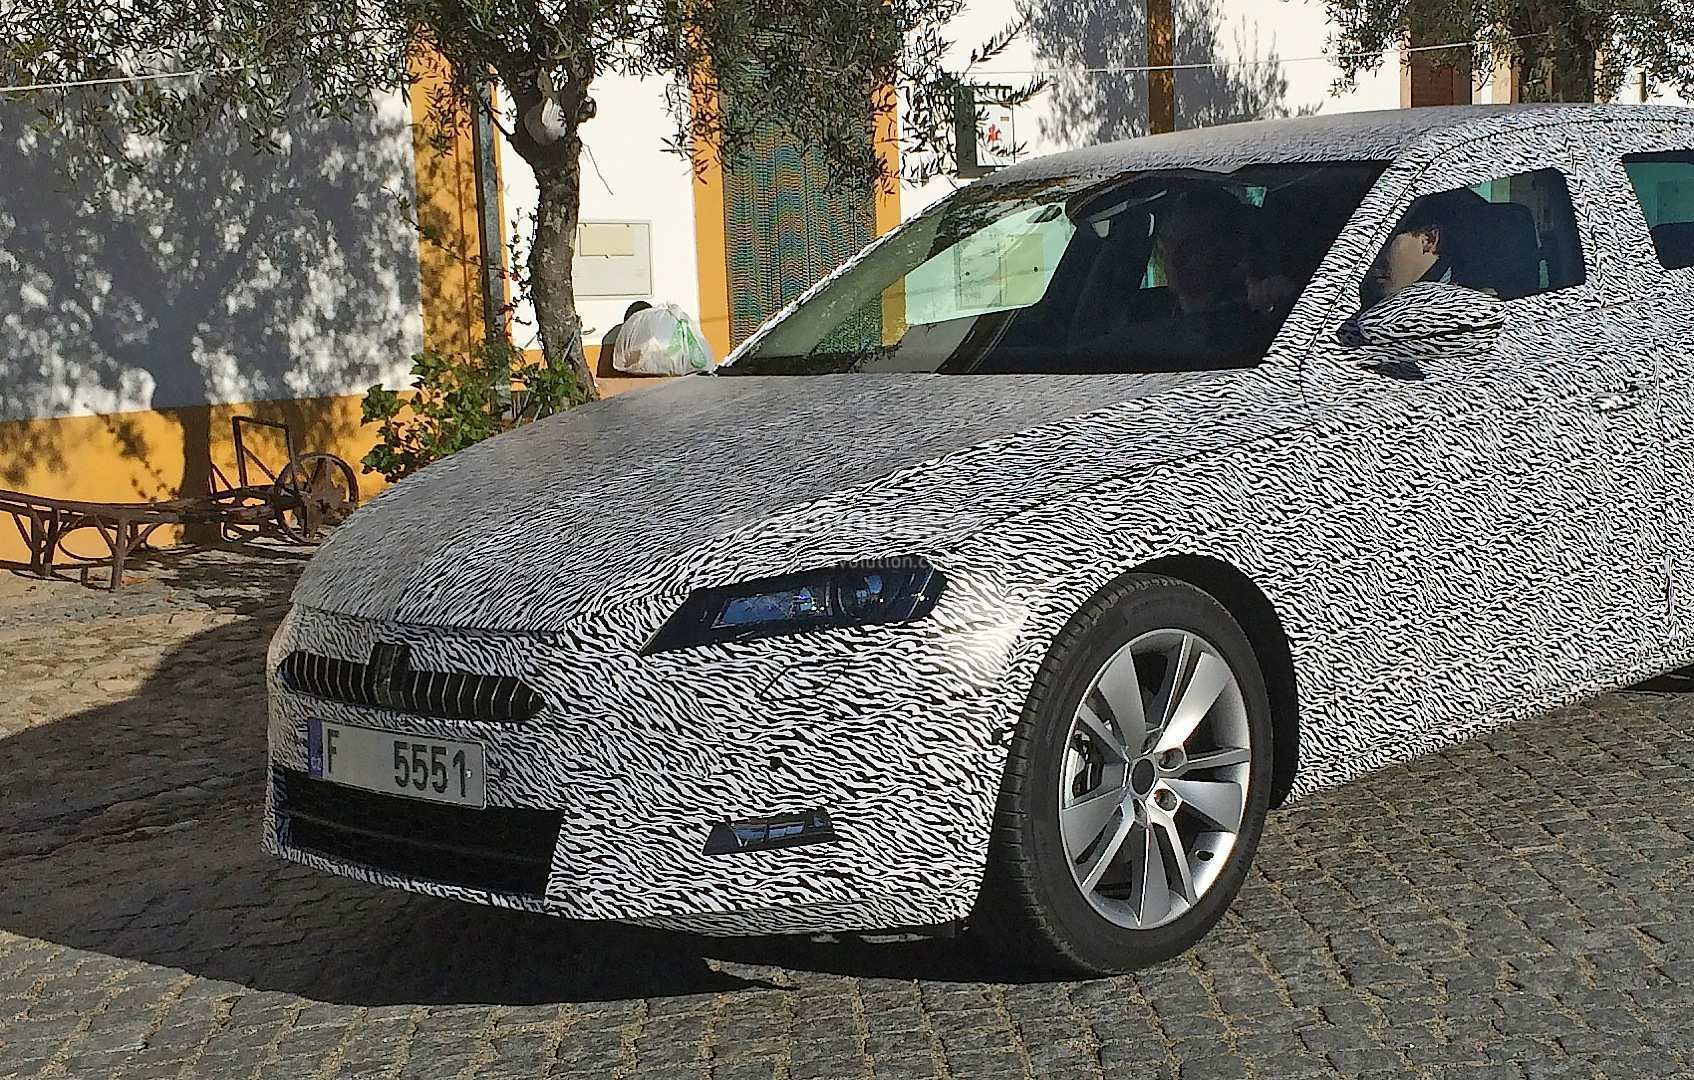 88 New Spy Shots Skoda Superb Configurations